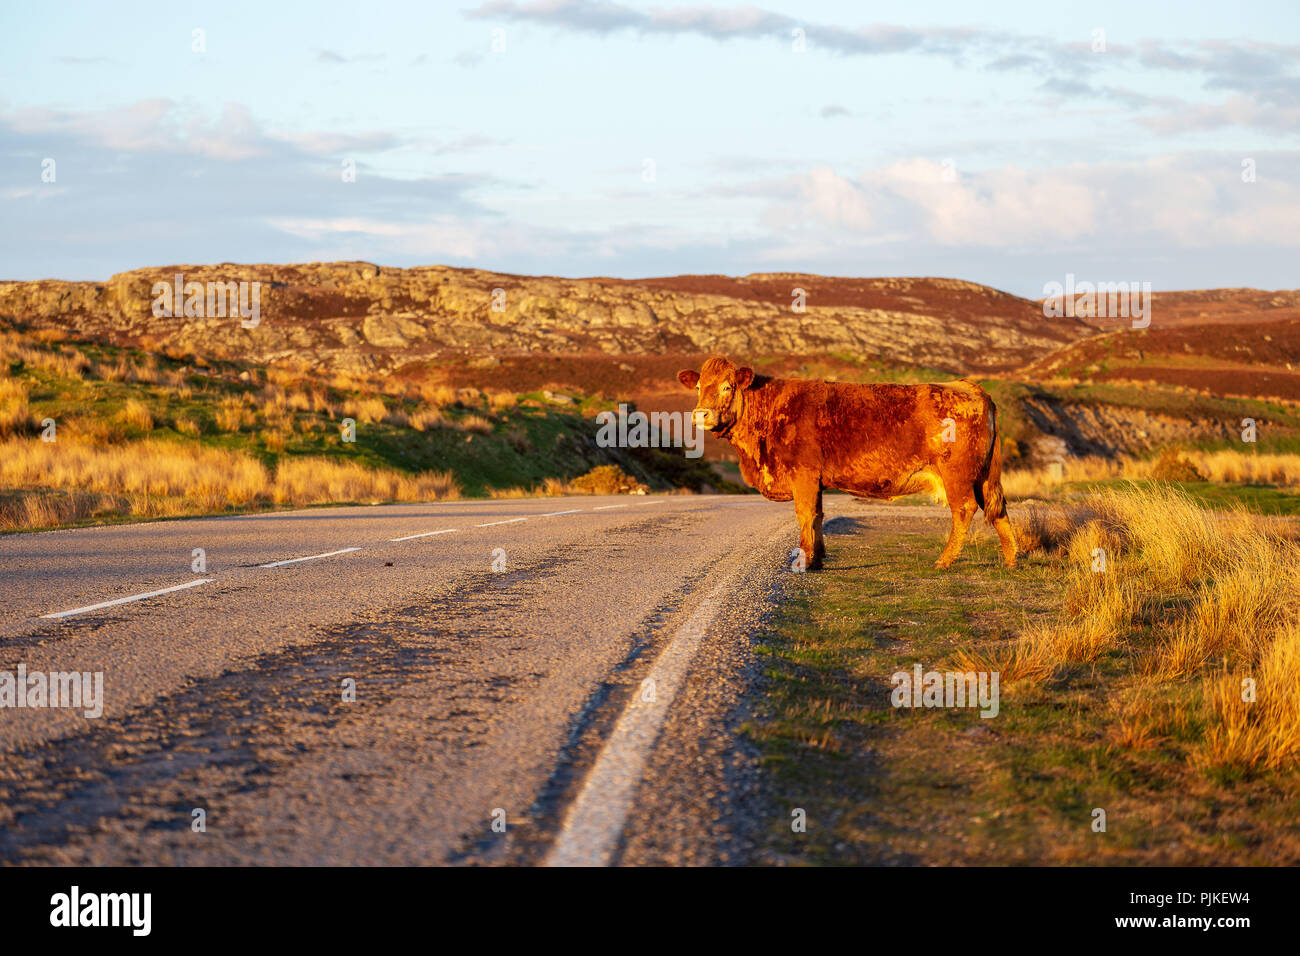 Cattle in the scottish highlands - Stock Image